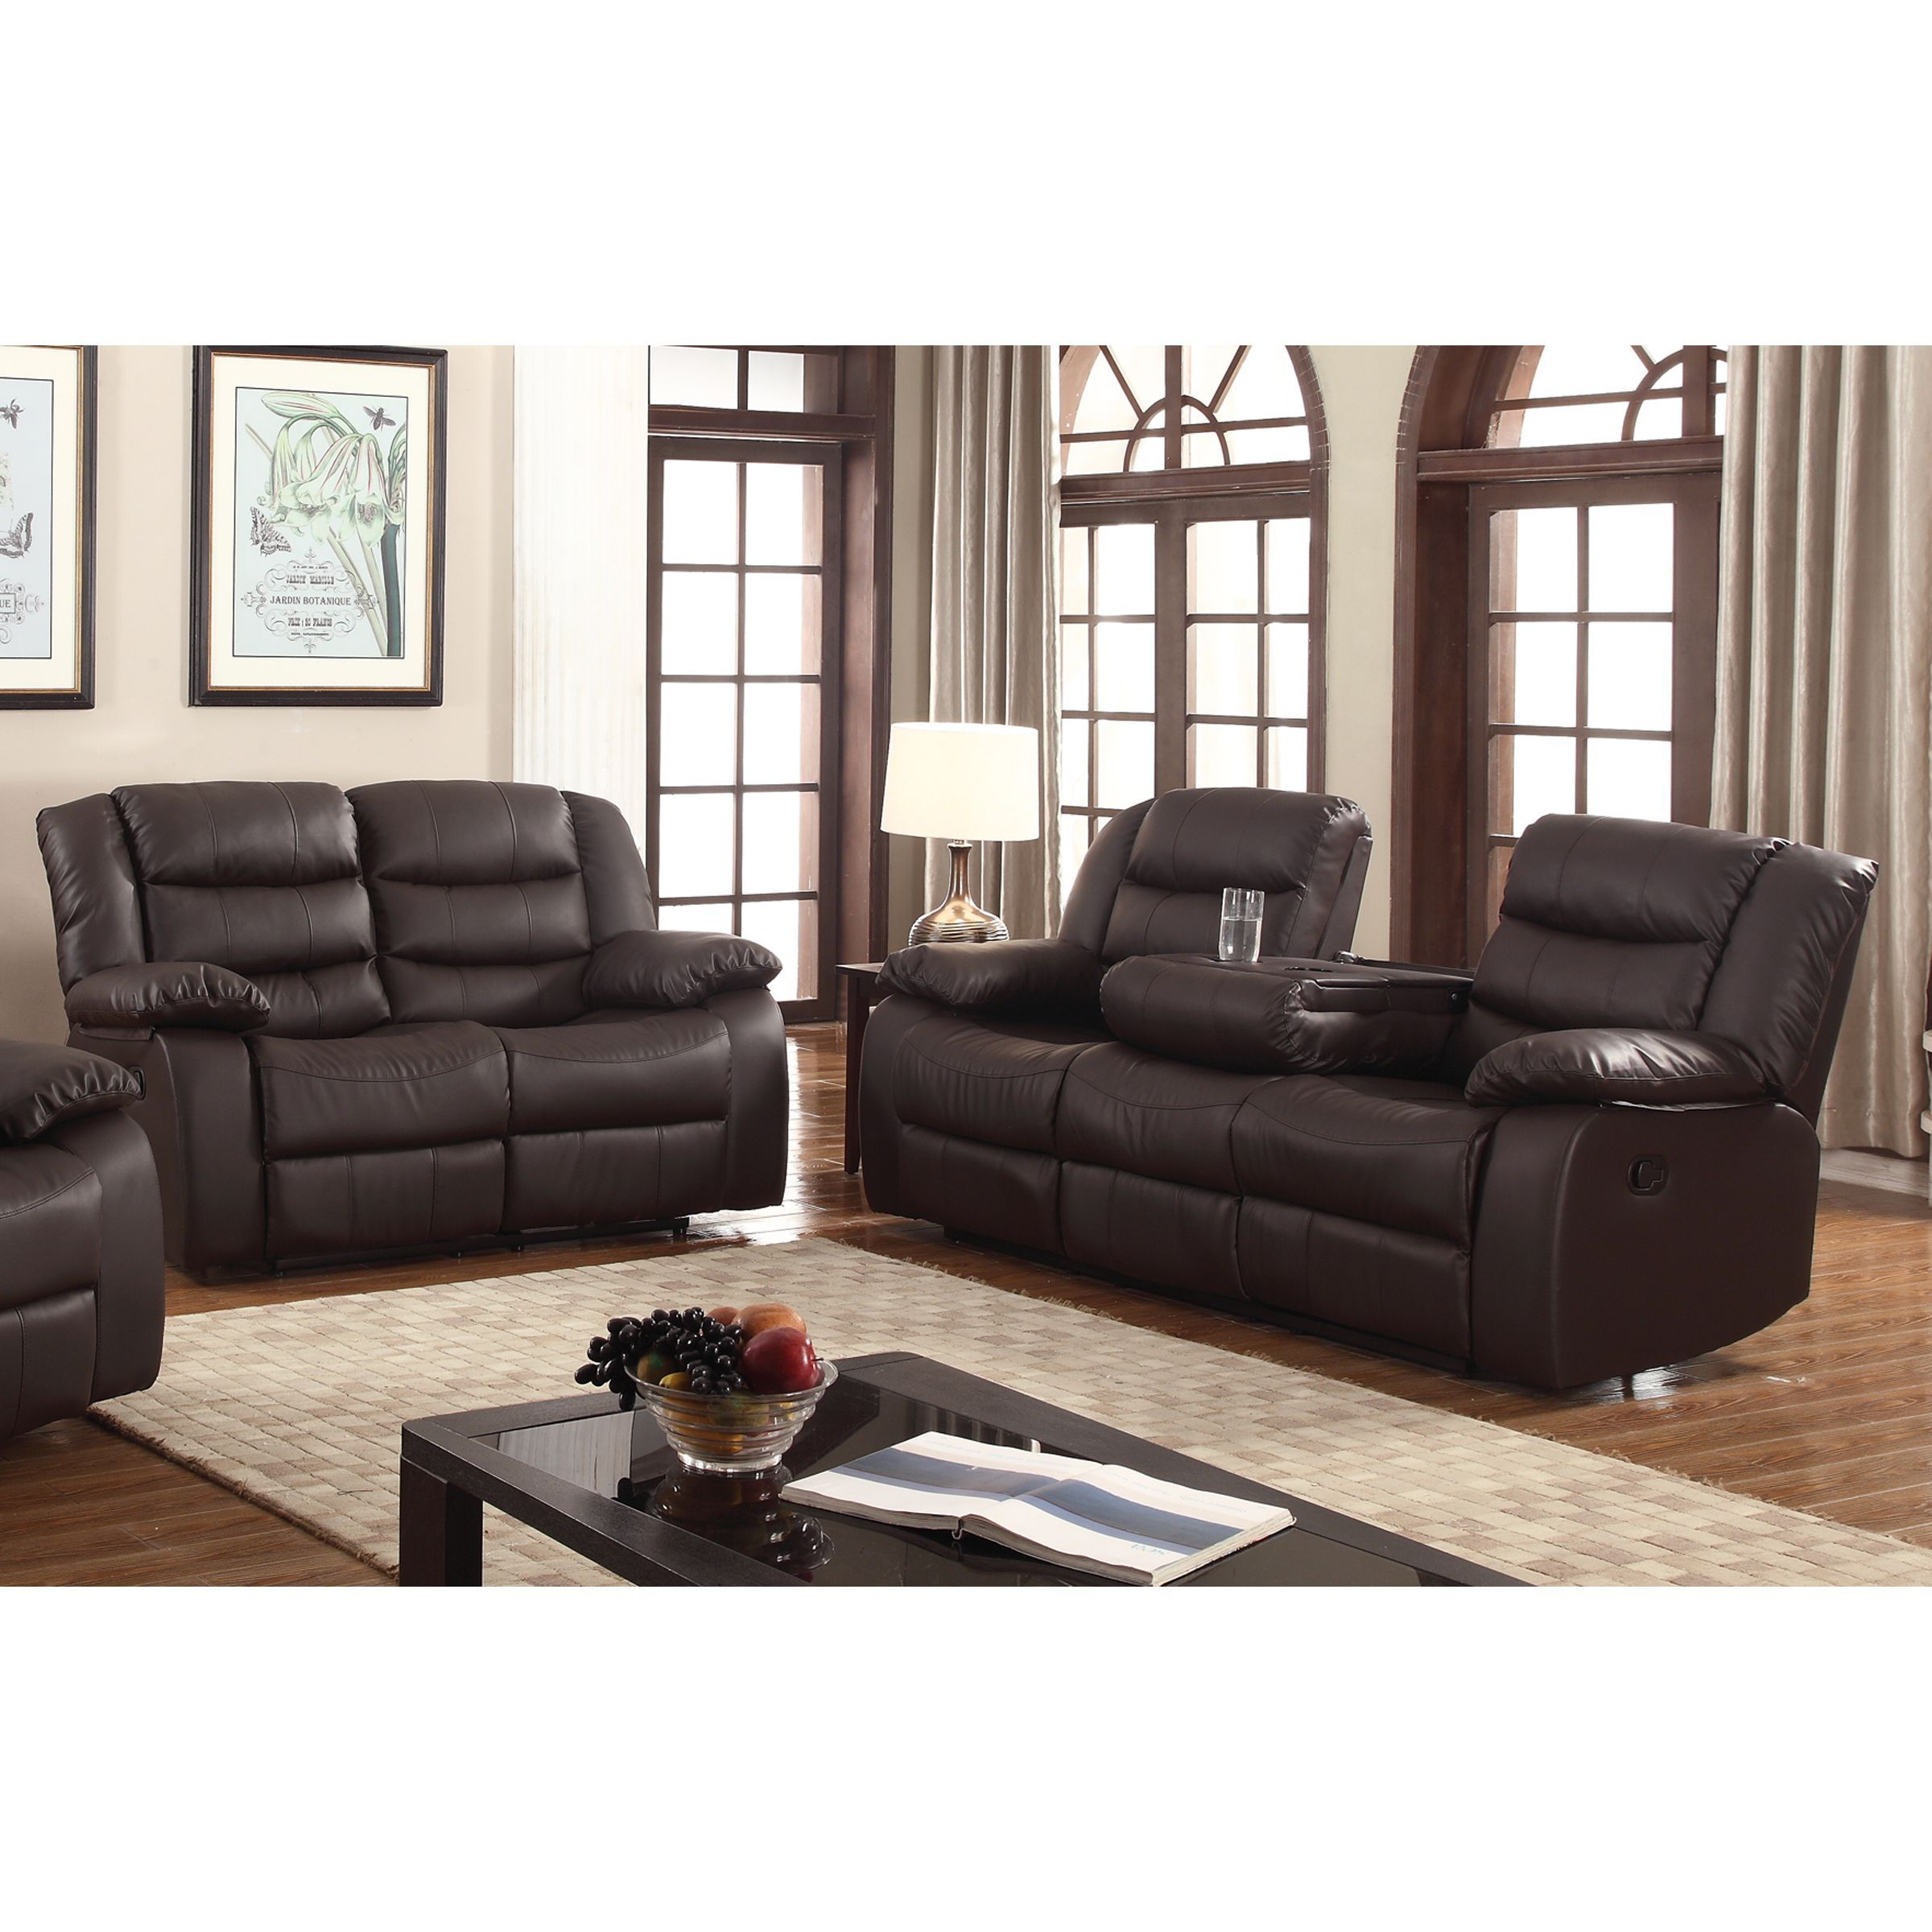 Gloria faux leather 2 piece reclining living room set dark brown